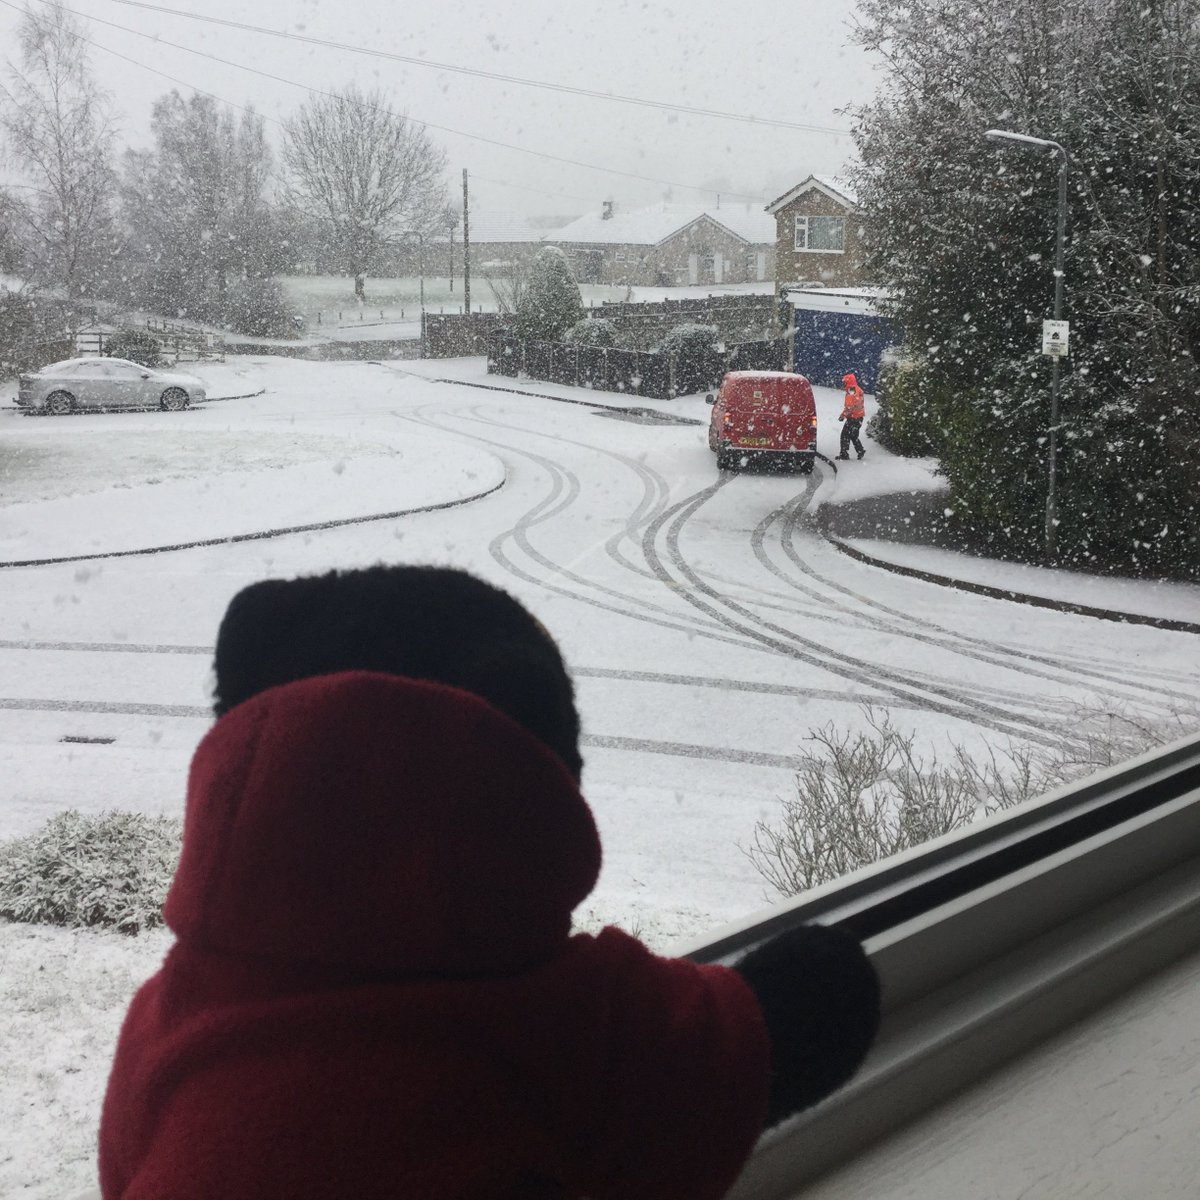 Day 304 of Isolation:  It's snowing again!  I'm glad the postman made it through with my honey delivery!  🐻🍯📫❄️  #SaturdayMorning #SaturdayMotivation #SaturdayVibes #Snowing #snow #coronavirus #COVID19 #coronavirus #StayHome #StaySafe